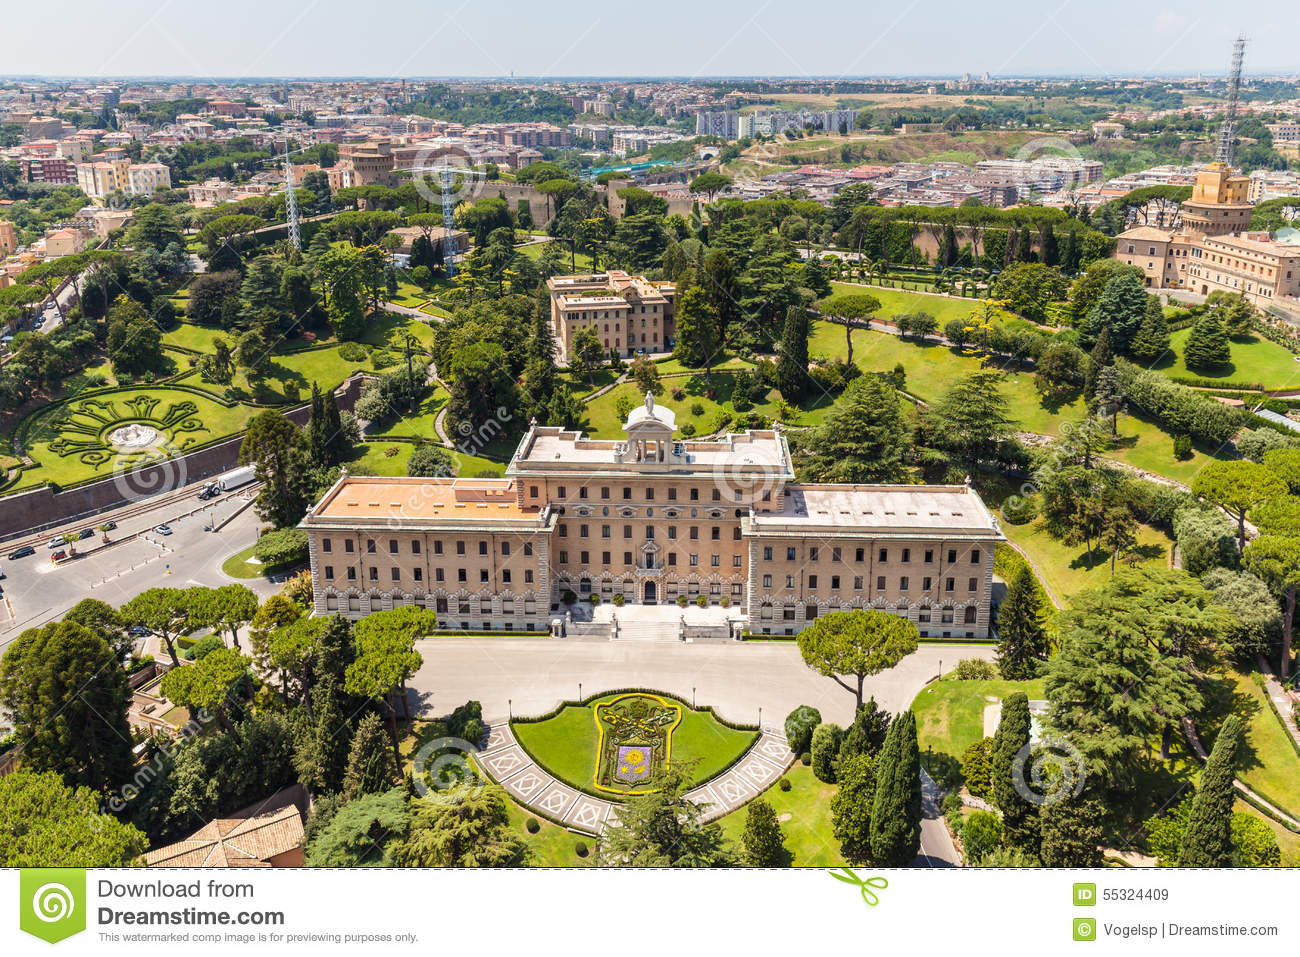 Vatican City Rome Travel Guide - Android Apps on Google Play